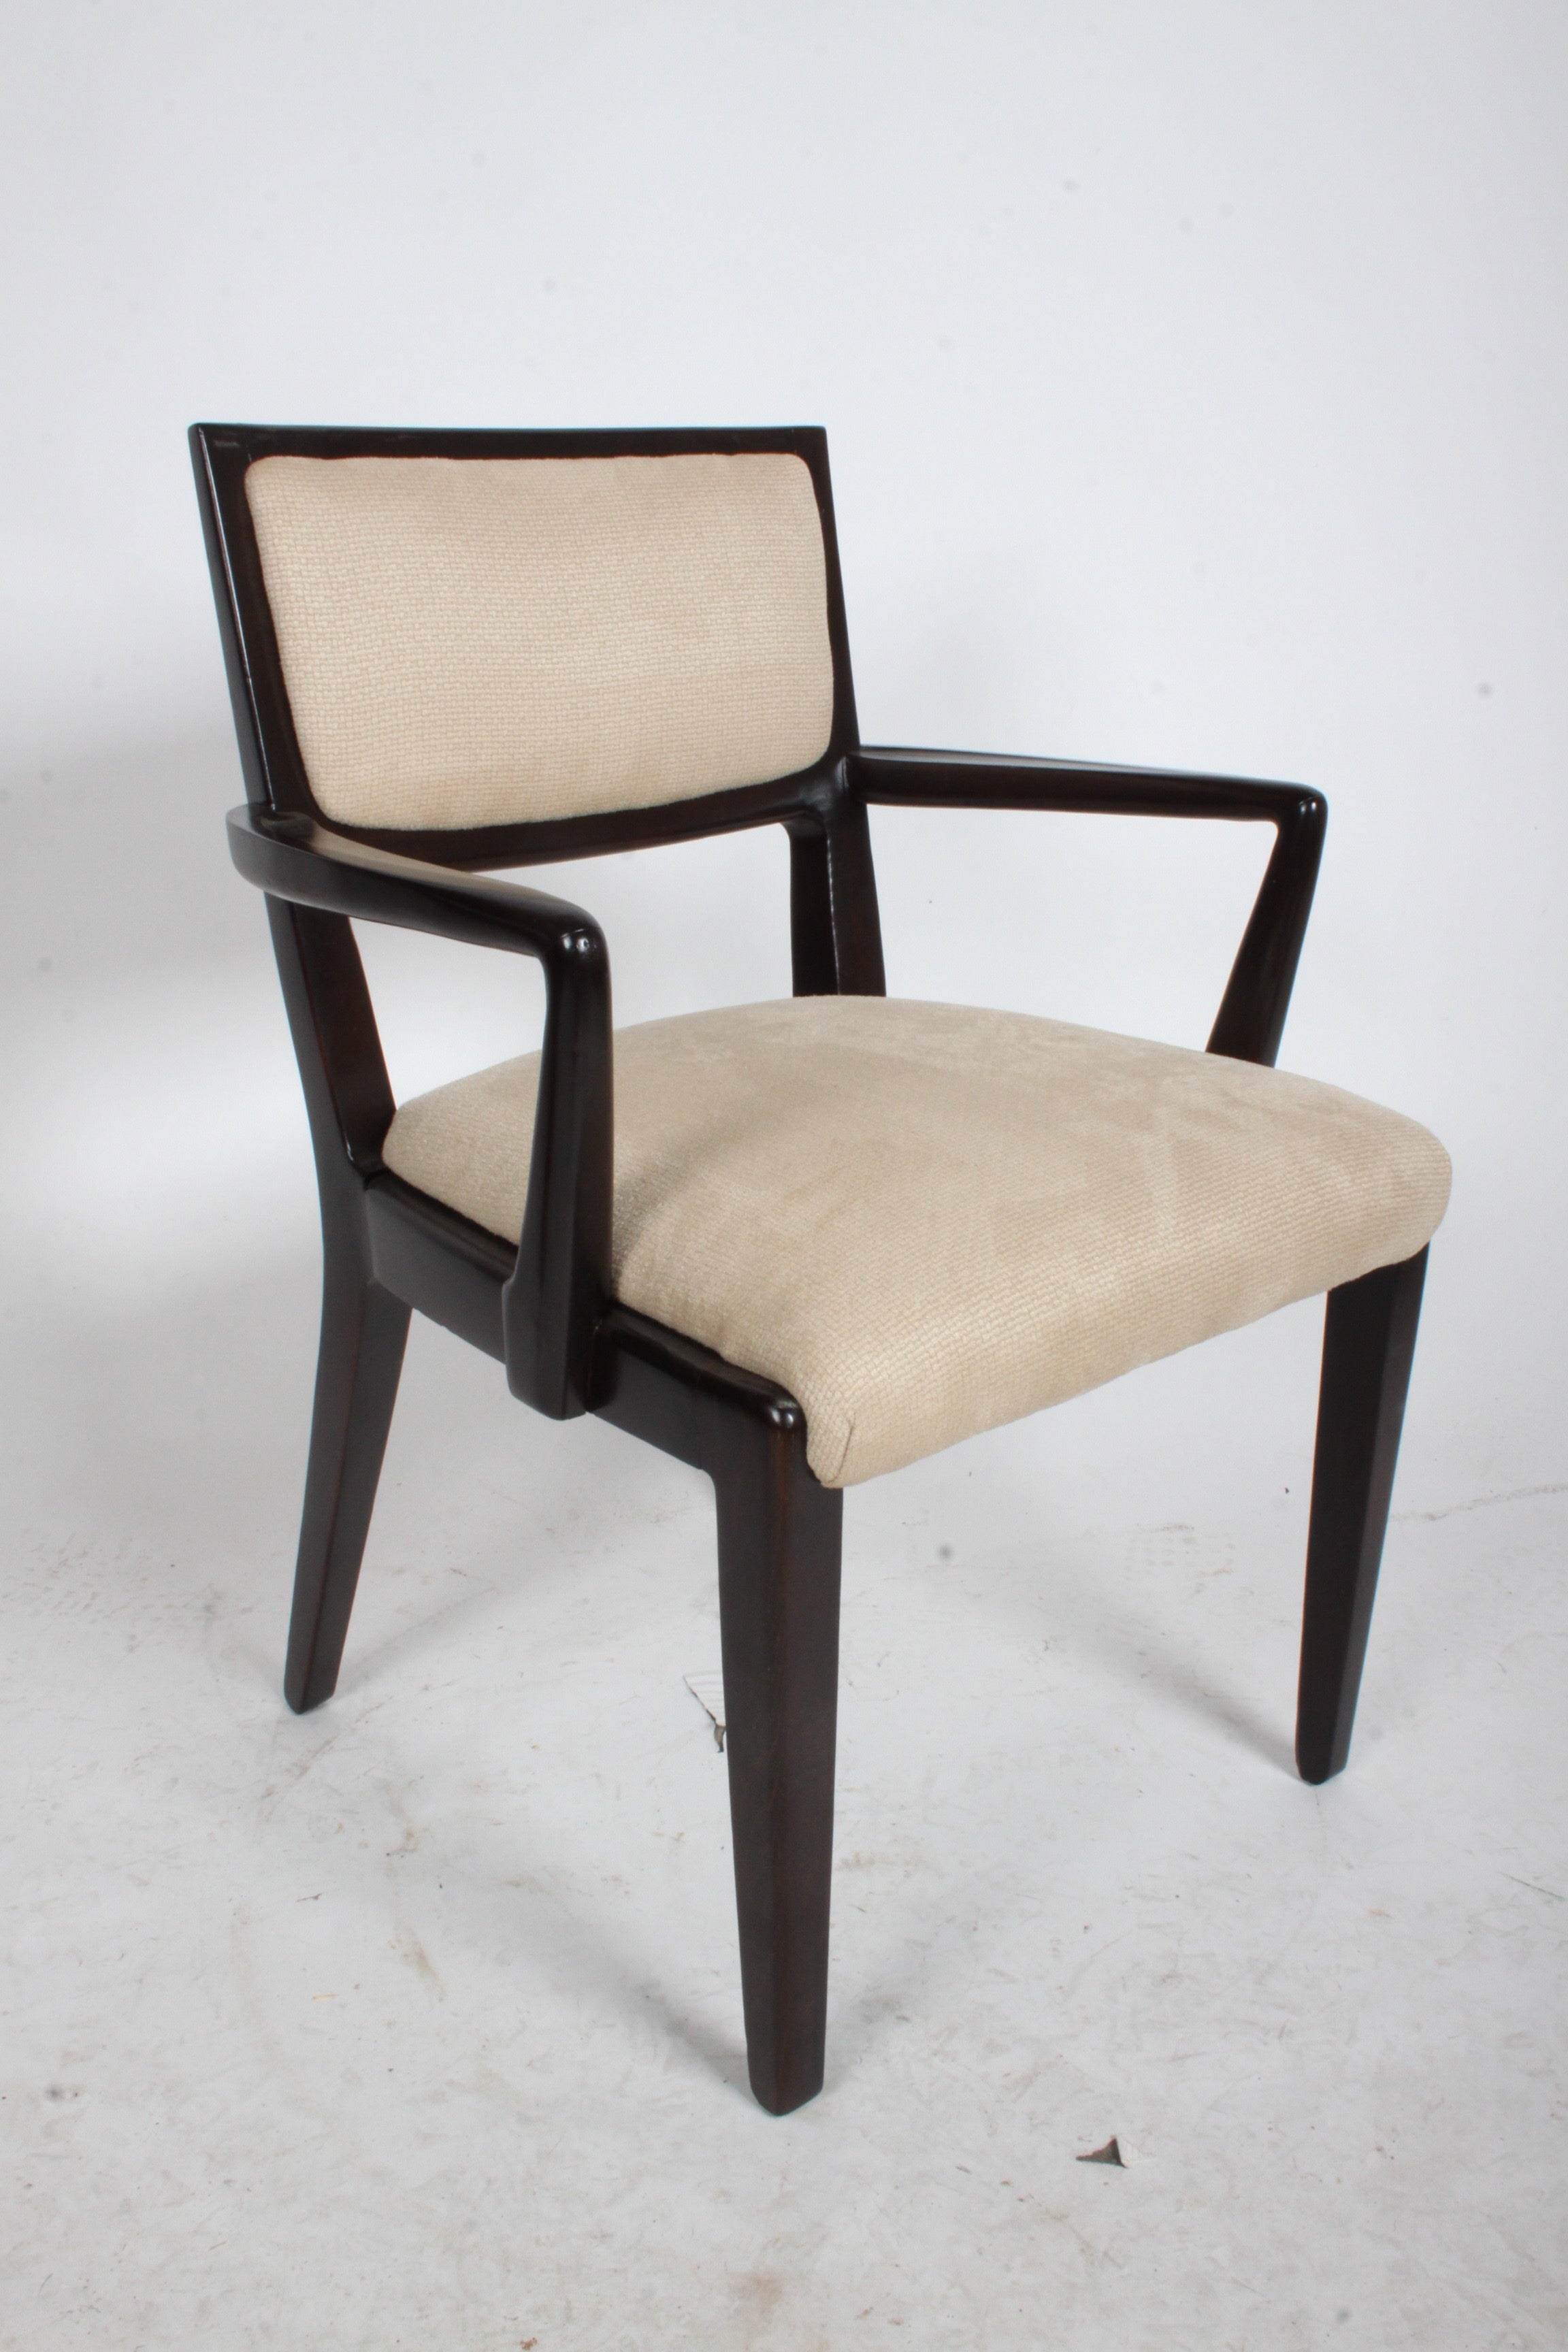 Pair Of Edward Wormley For Drexel Arm Chairs   Precedent Collection For  Sale At 1stdibs